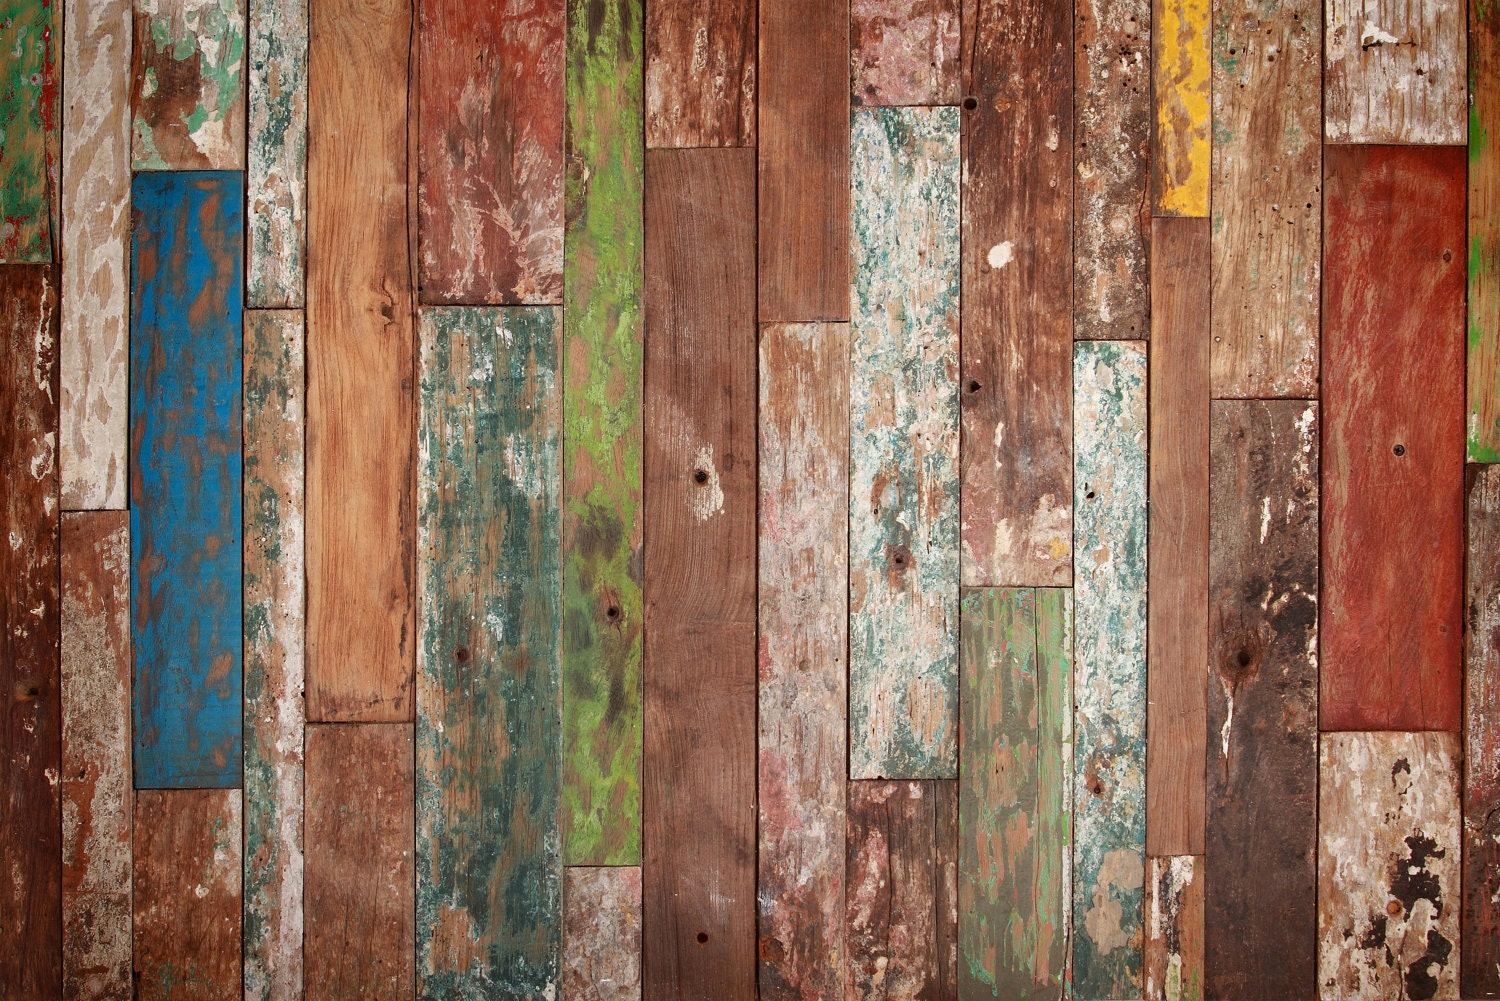 Collaged Wood 5'x5' backdrop/floordrop